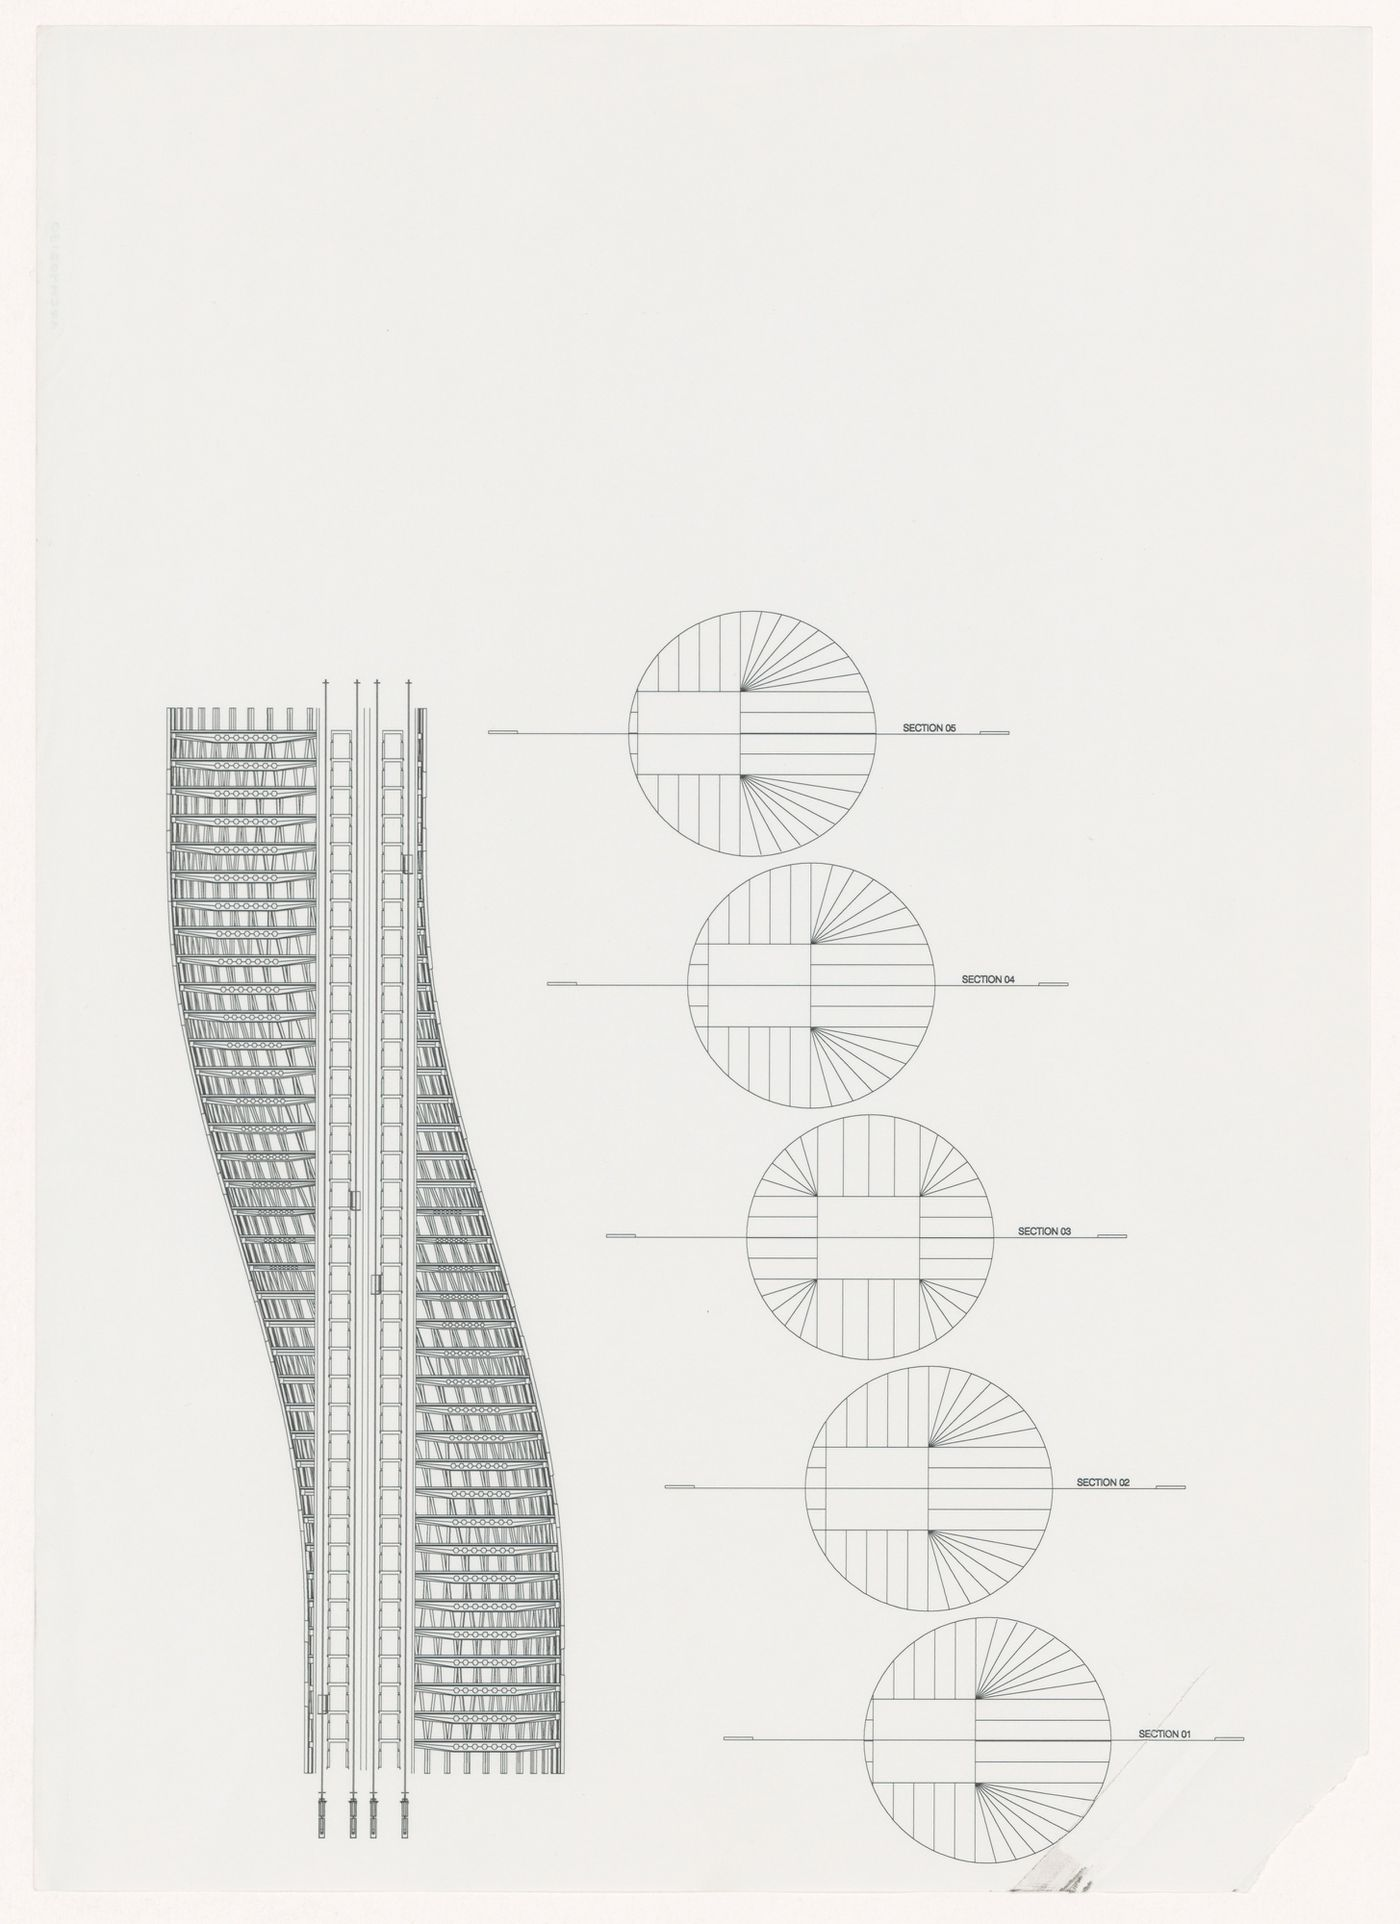 Sections and elevation for World Trade Center, Ground Zero, New York City, New York